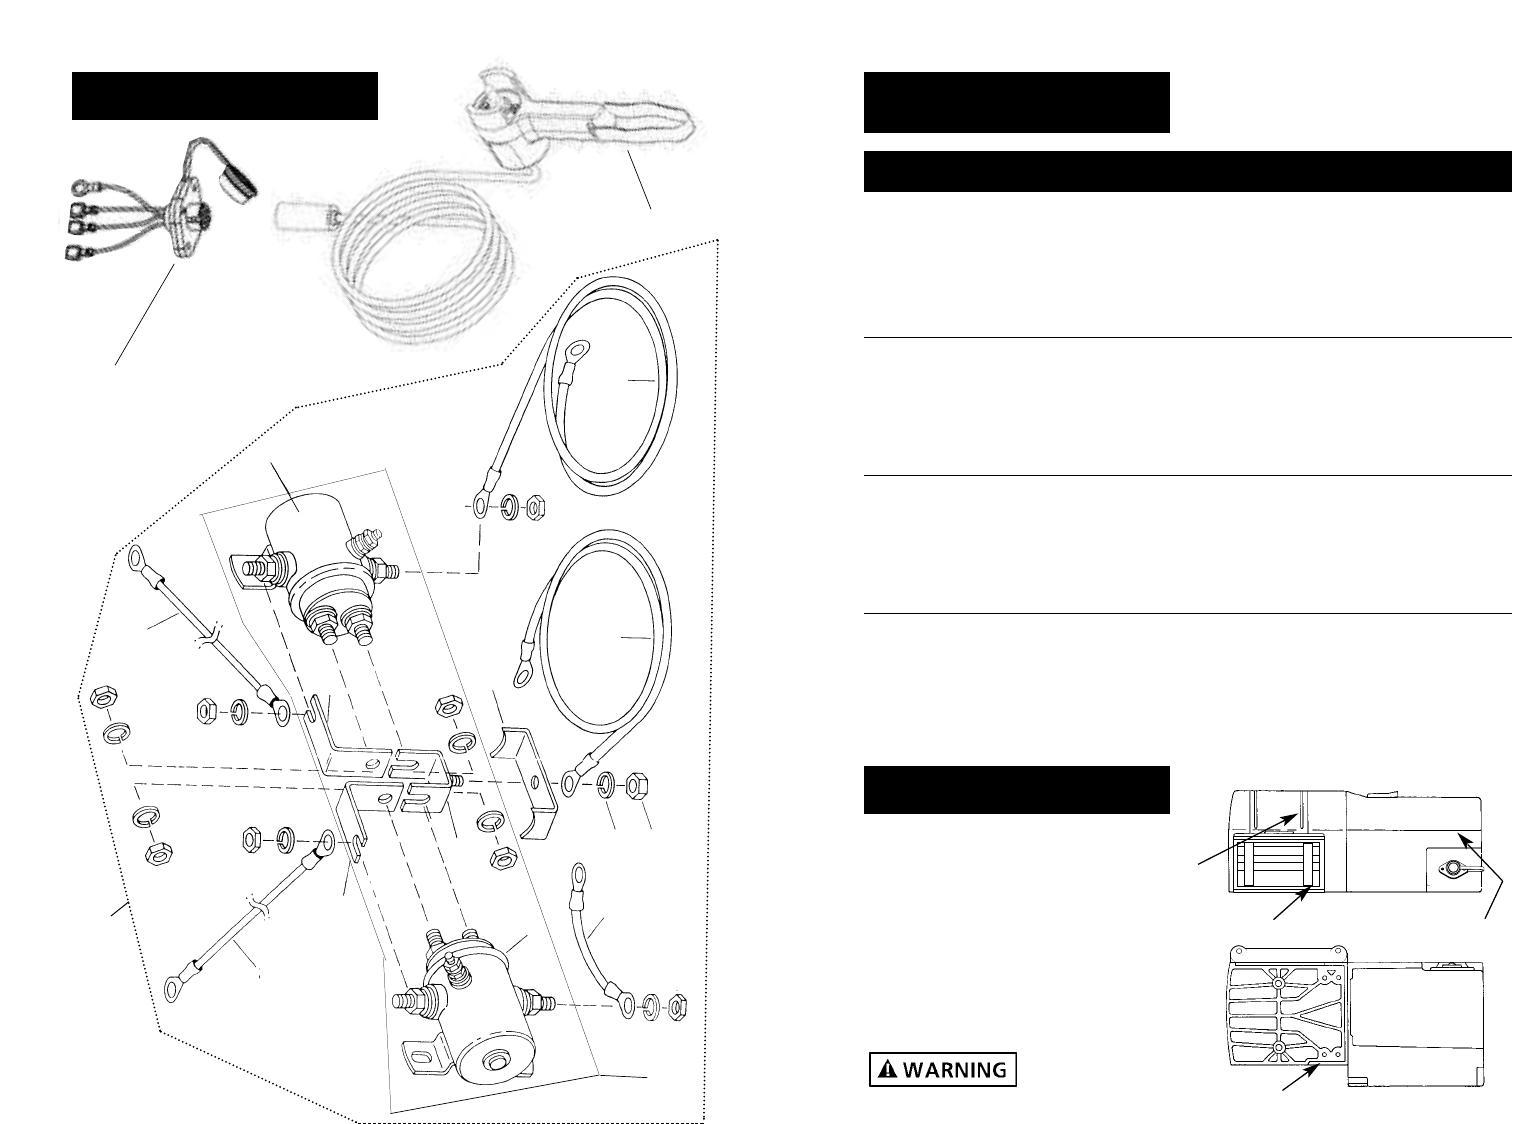 Superwinch S3000/S4000/S5000 Owners Manual - Page 10